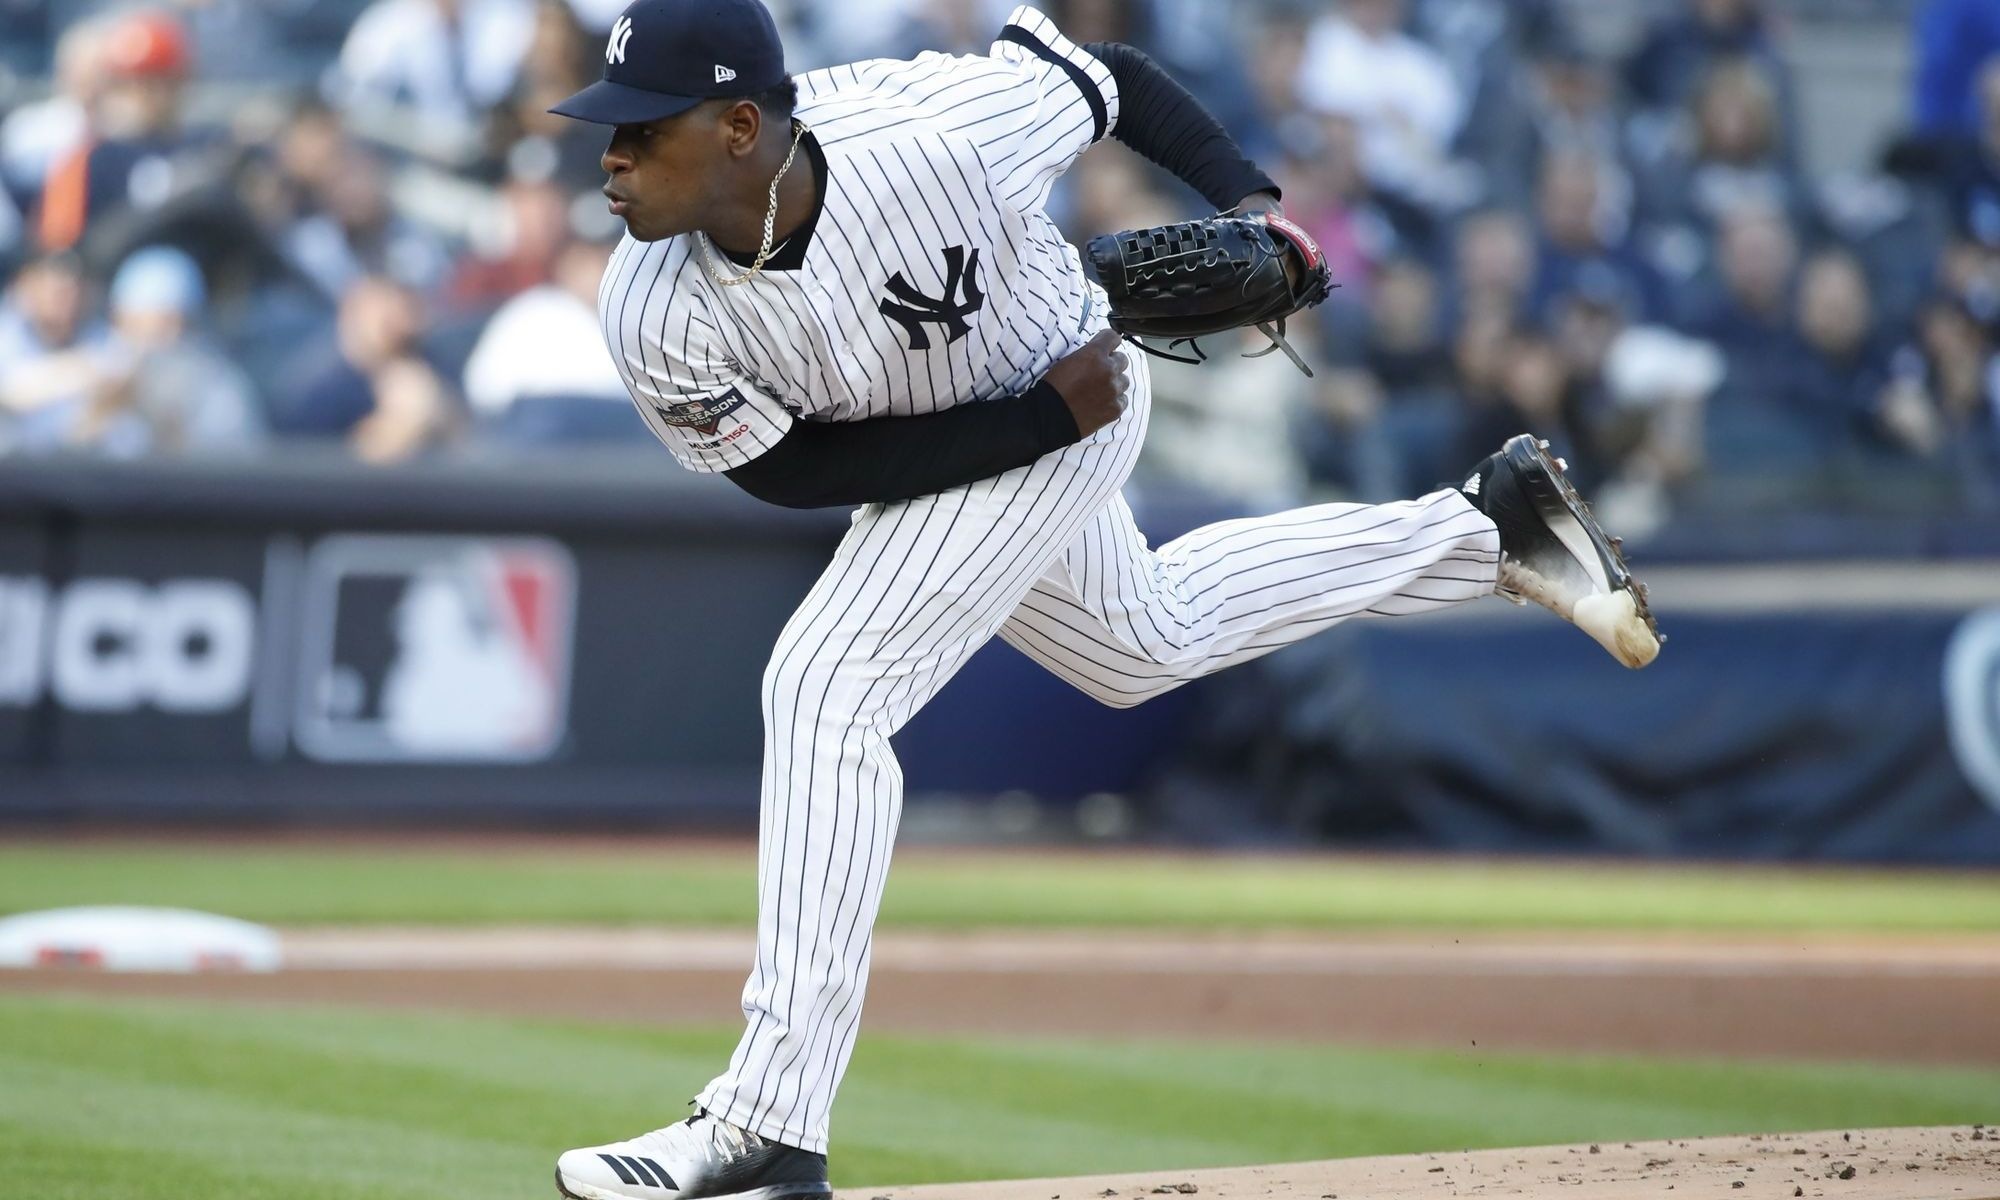 Luis Severino's injury signals more bad news for the Yankees.